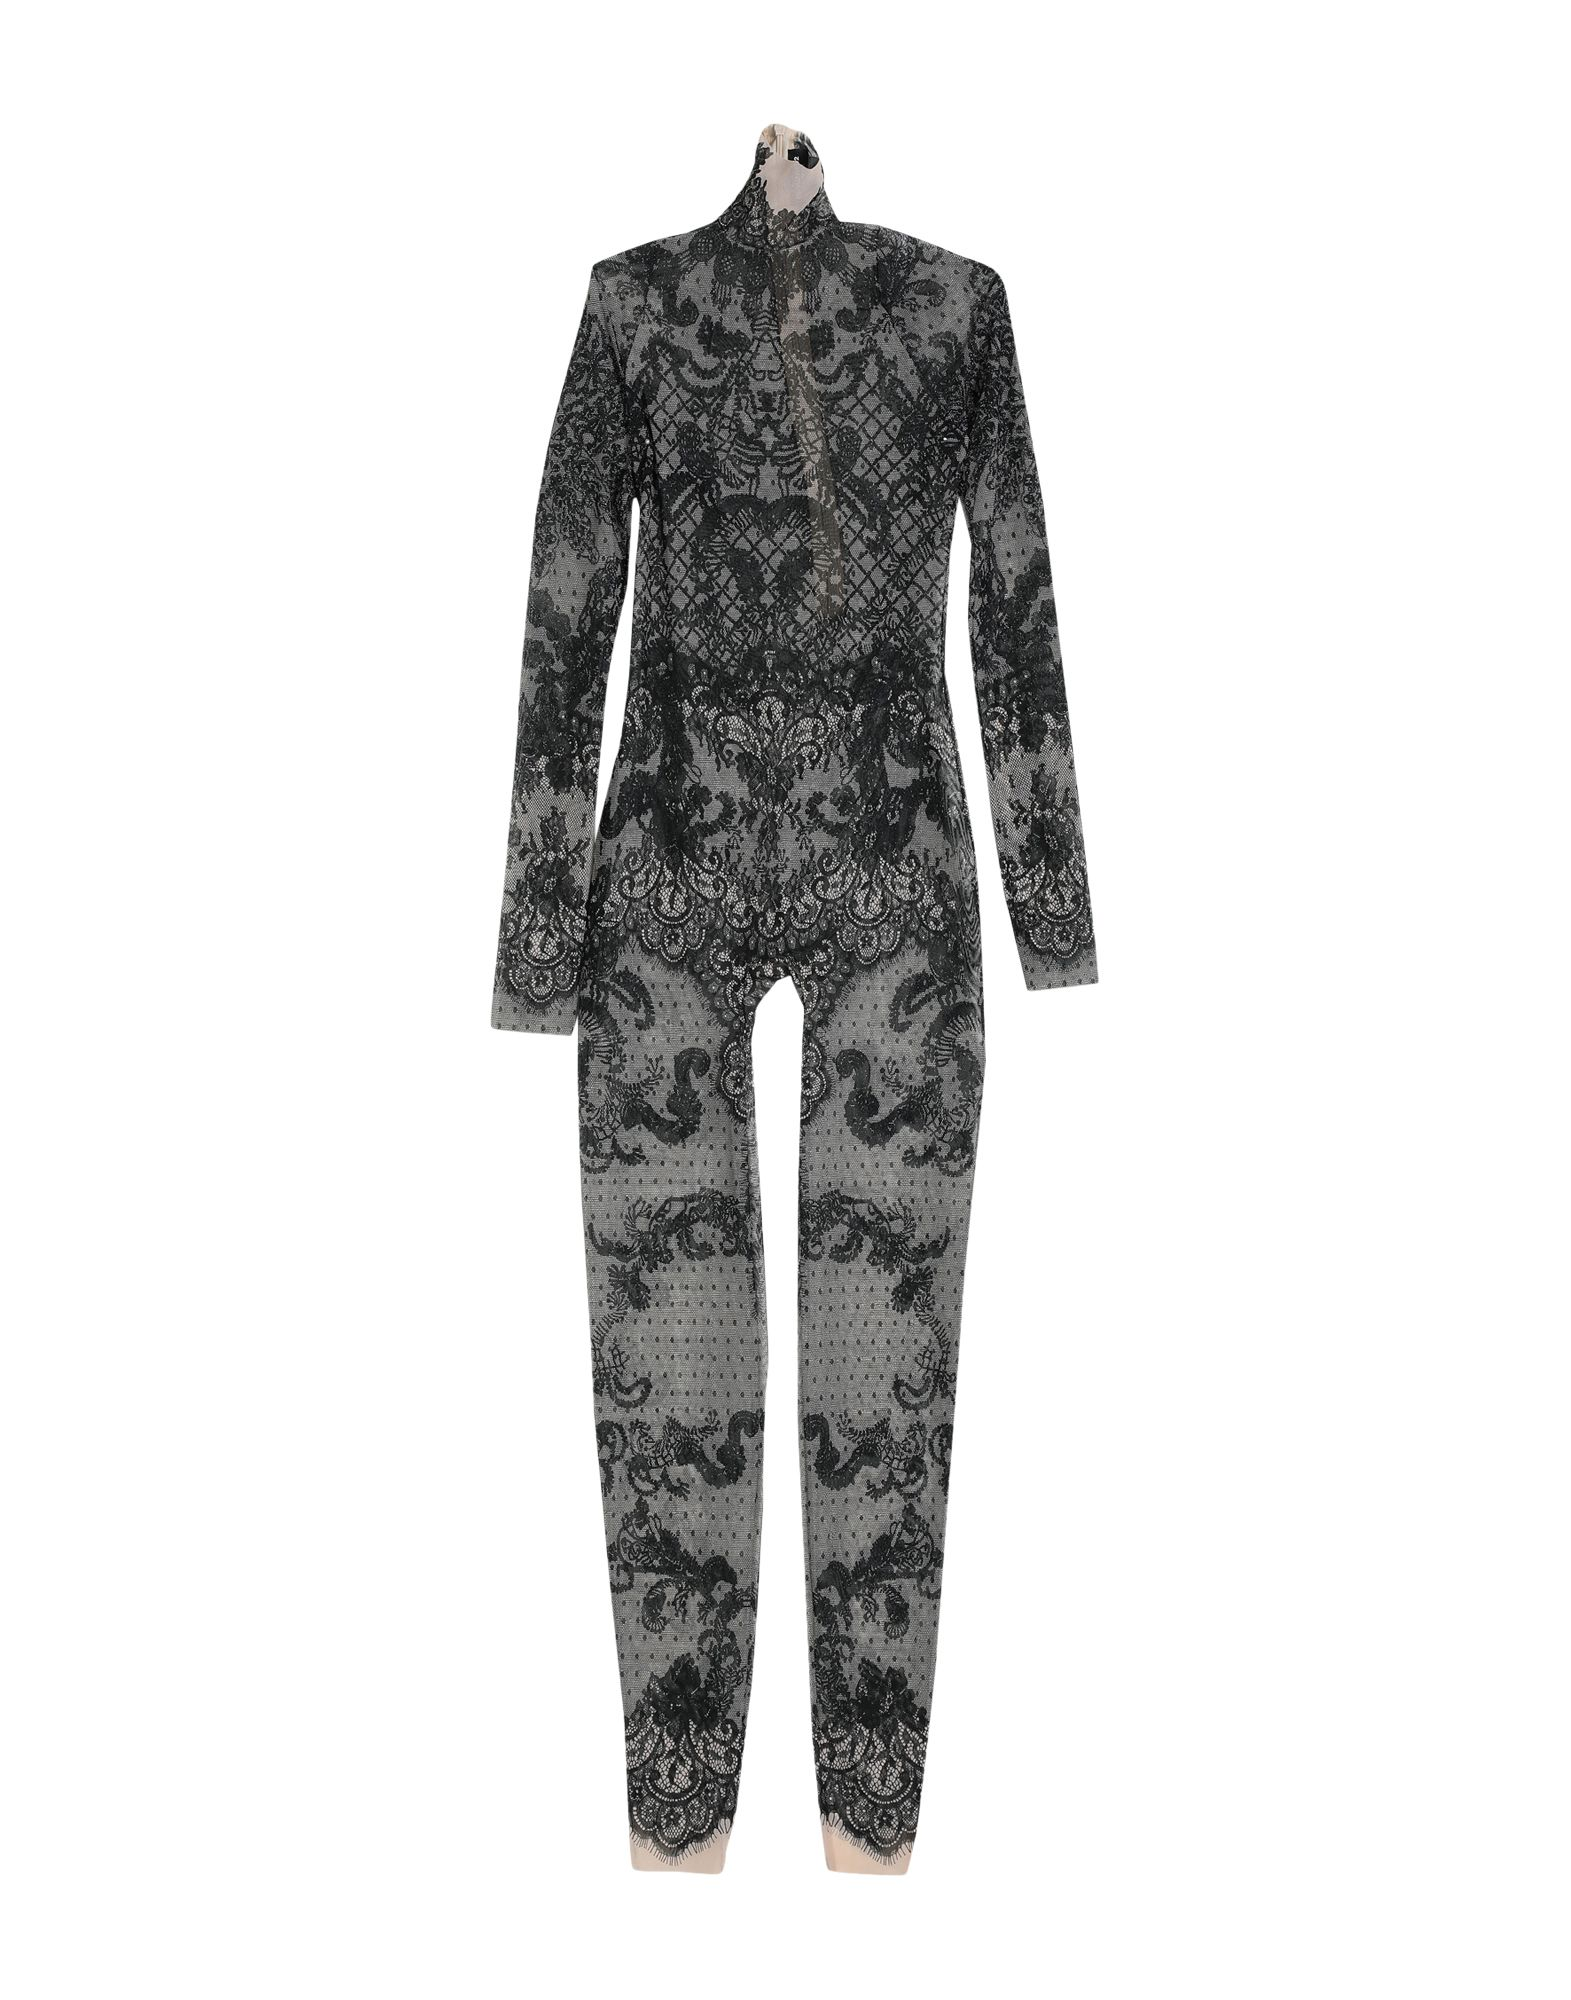 DSQUARED2 Jumpsuits. Tulle Turtleneck No appliqués Two-tone Long sleeves No pockets Zip Rear closure Stretch. 93% Polyamide, 7% Elastane